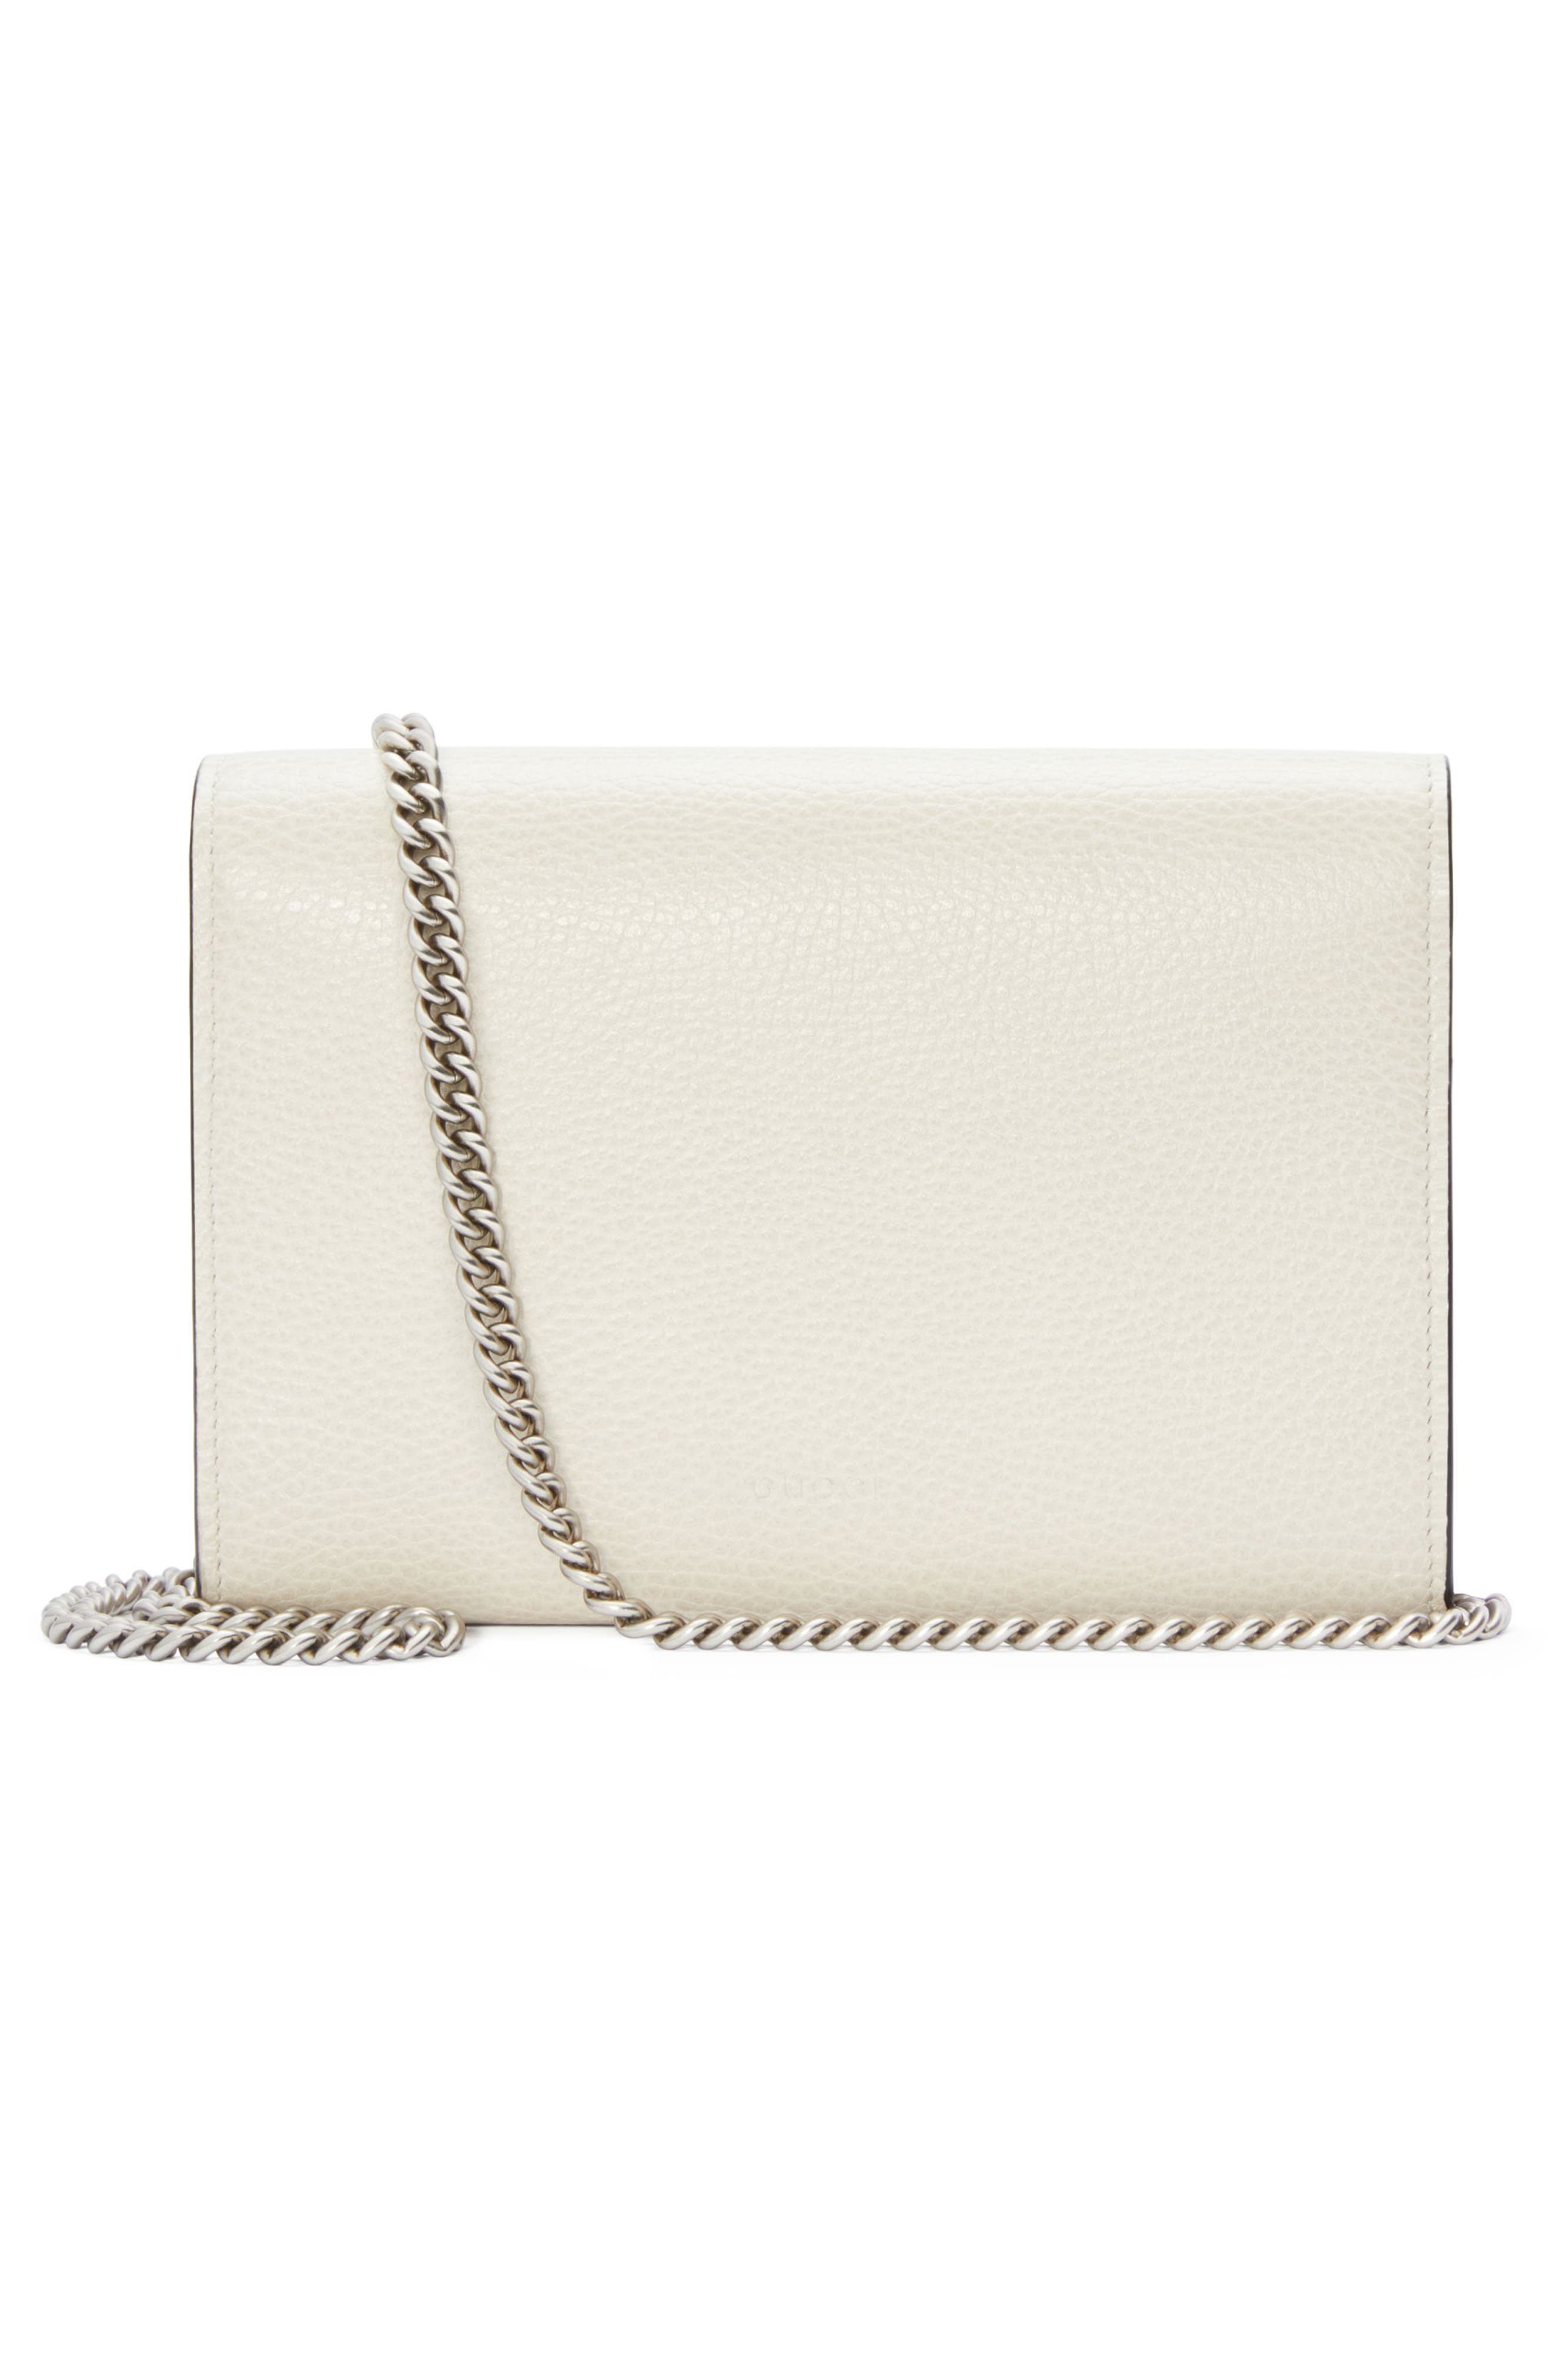 Small Dionysus Leather Clutch,                             Alternate thumbnail 2, color,                             MYSTIC WHITE/ BLACK DIAMOND